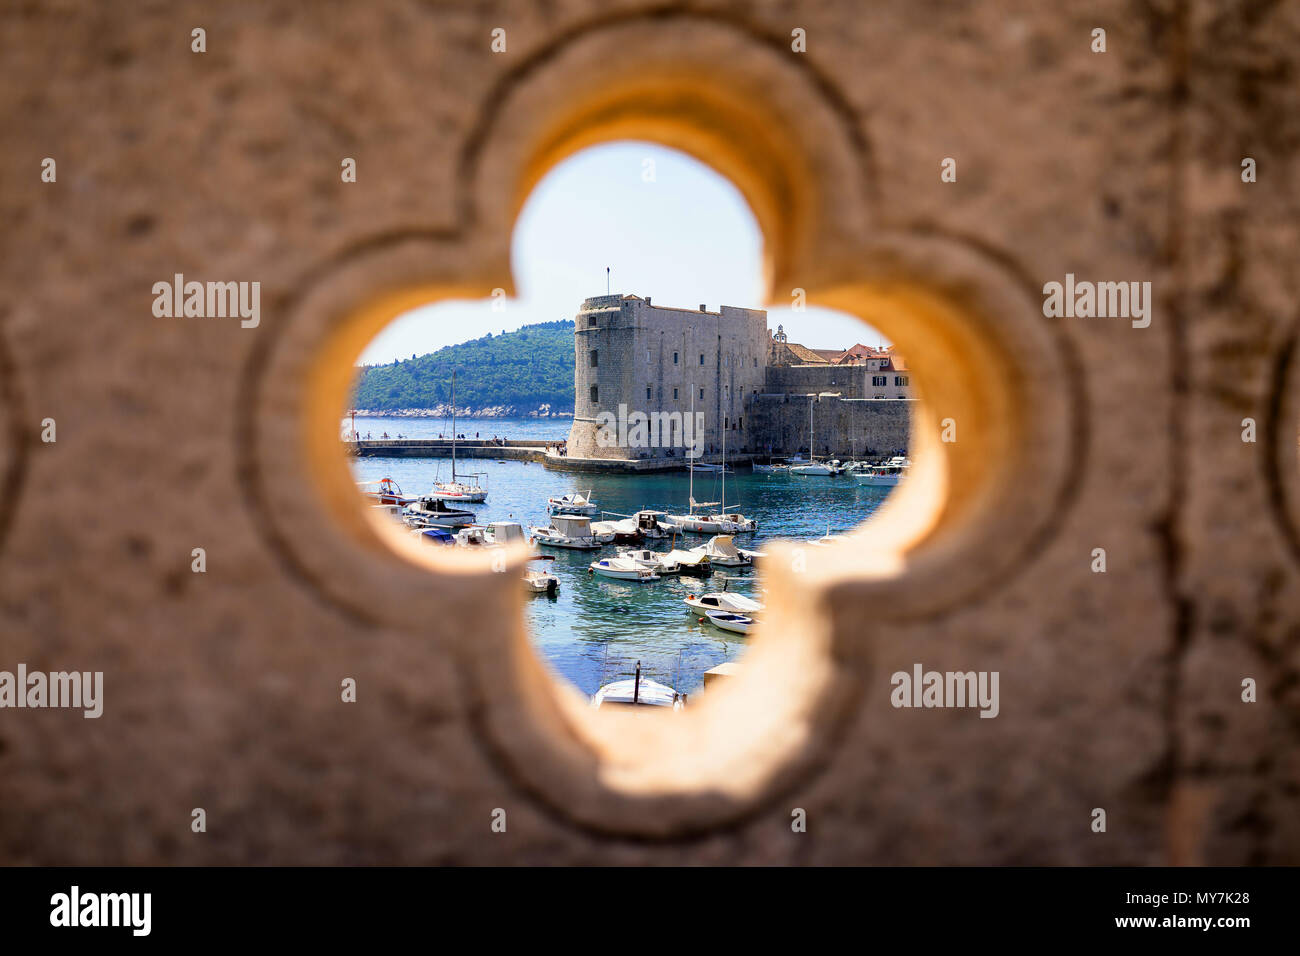 Dubrovnik harbor view through stone carved detail - Stock Image